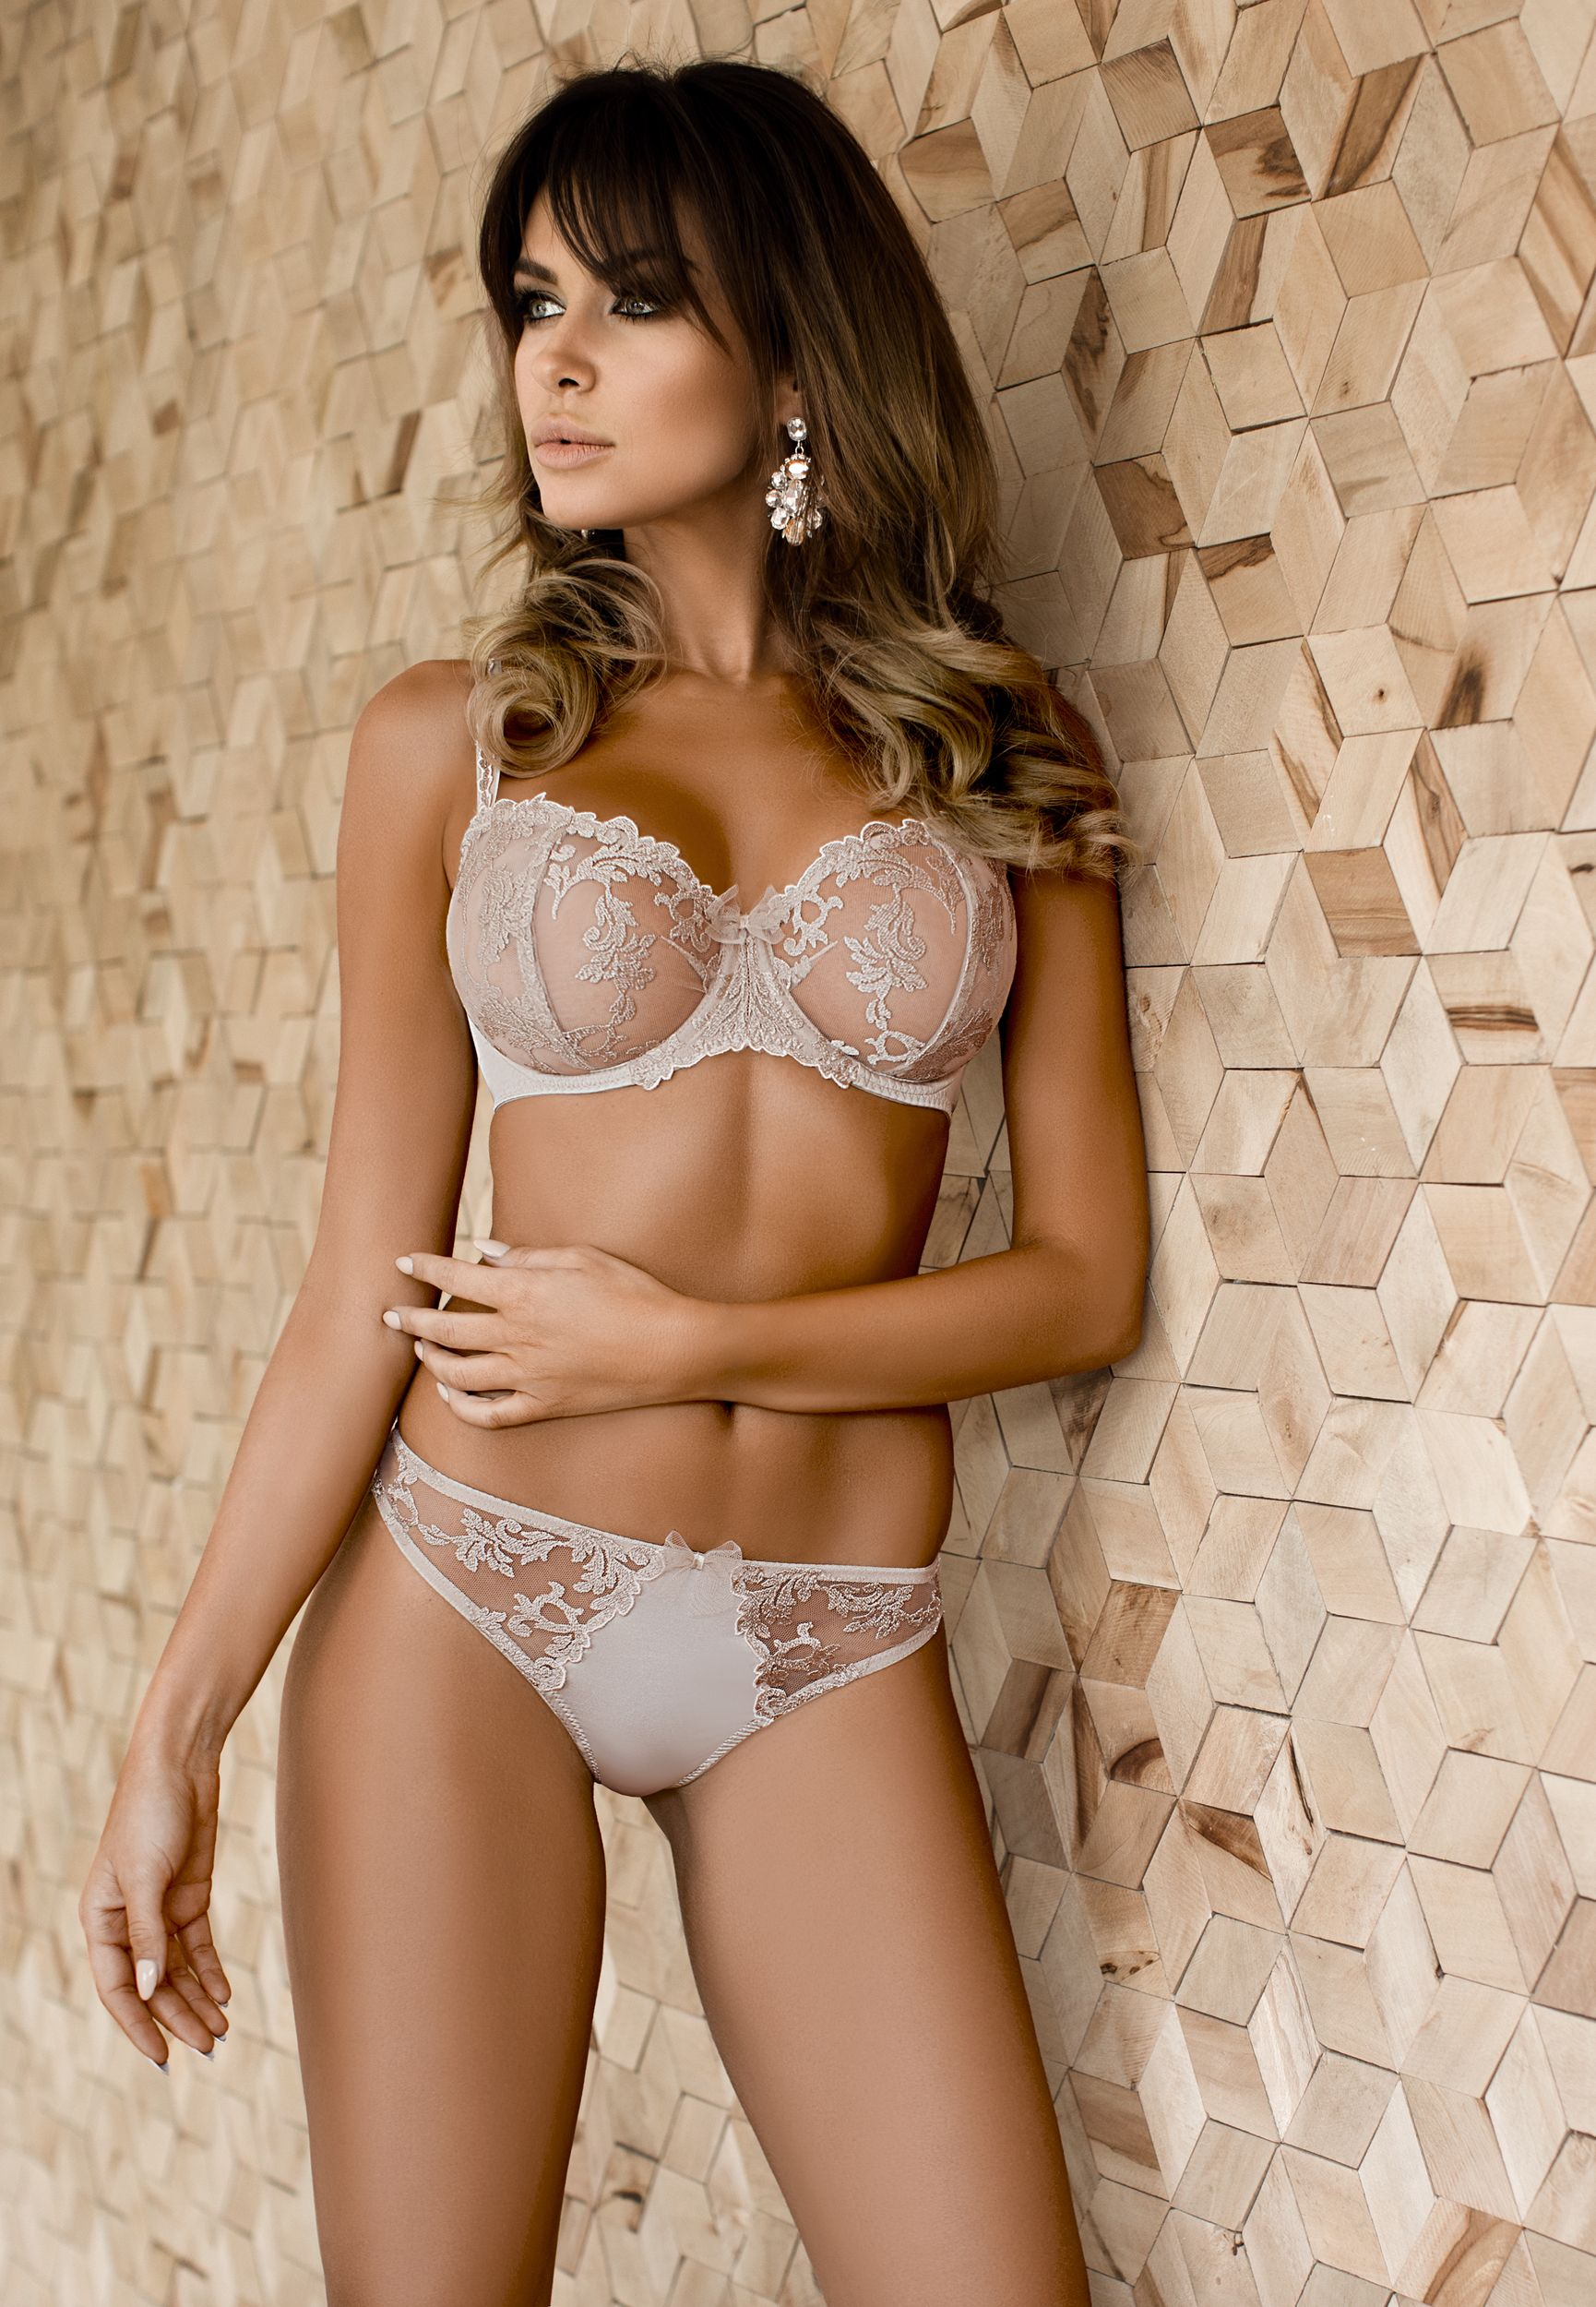 nude celeste at mymuse | new new new! | pinterest | nude, european